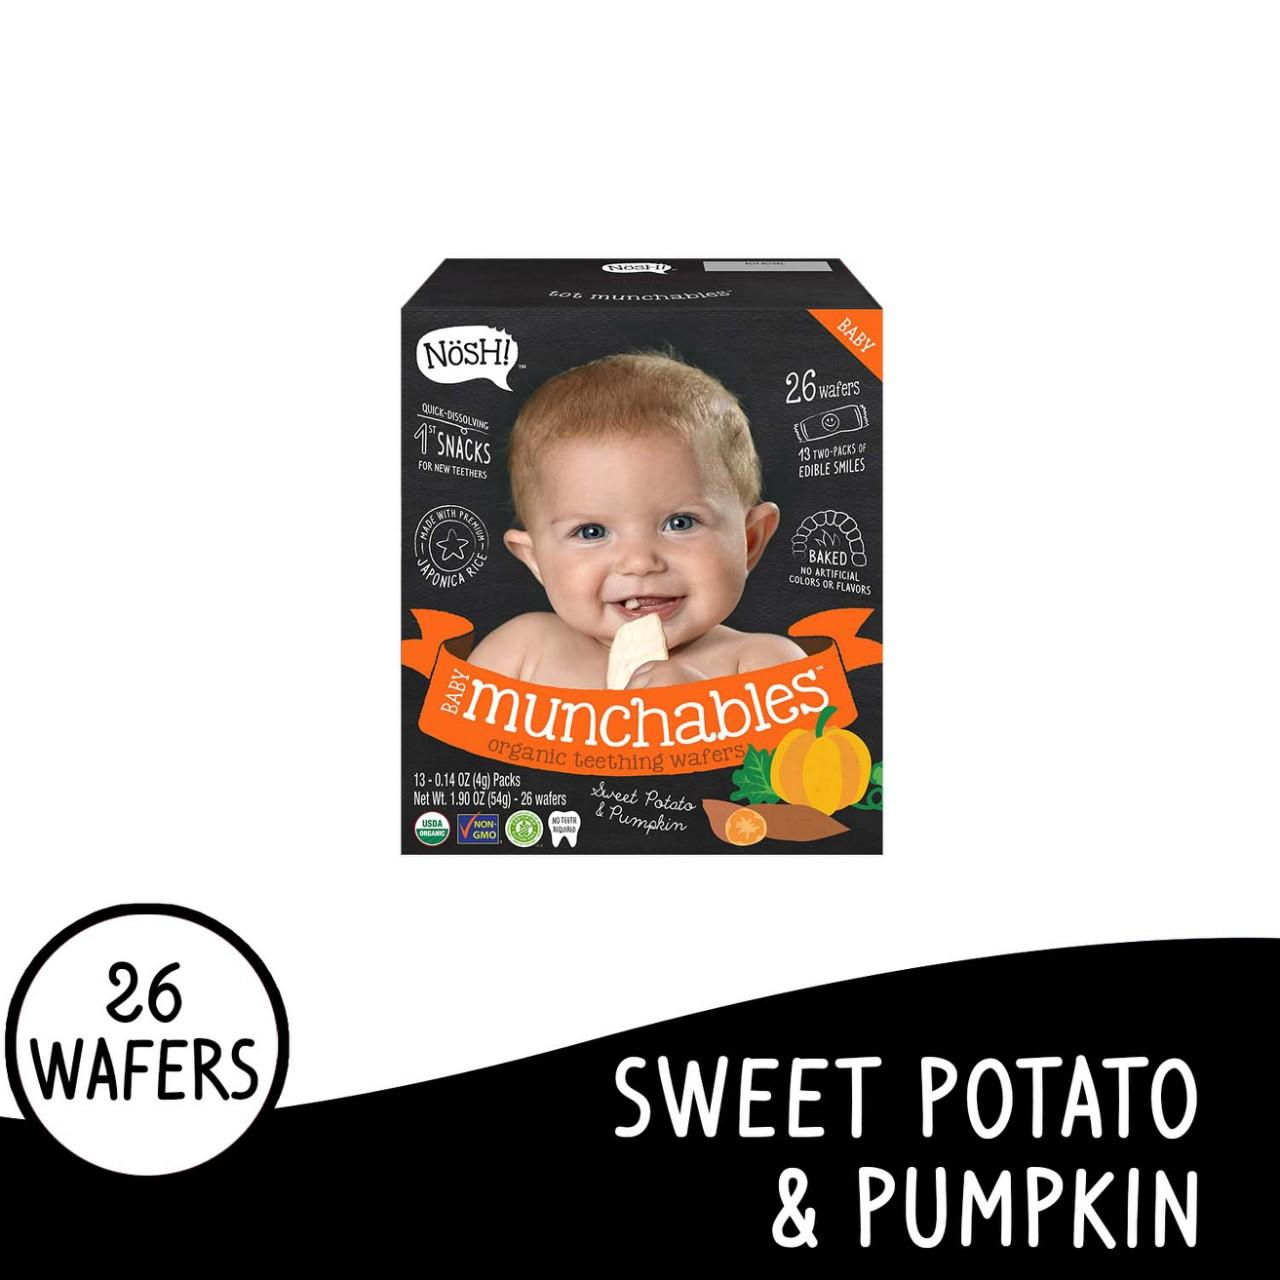 Nosh Baby Munchables Sweet Potato & Pumkin By Nosh Baby Ph.